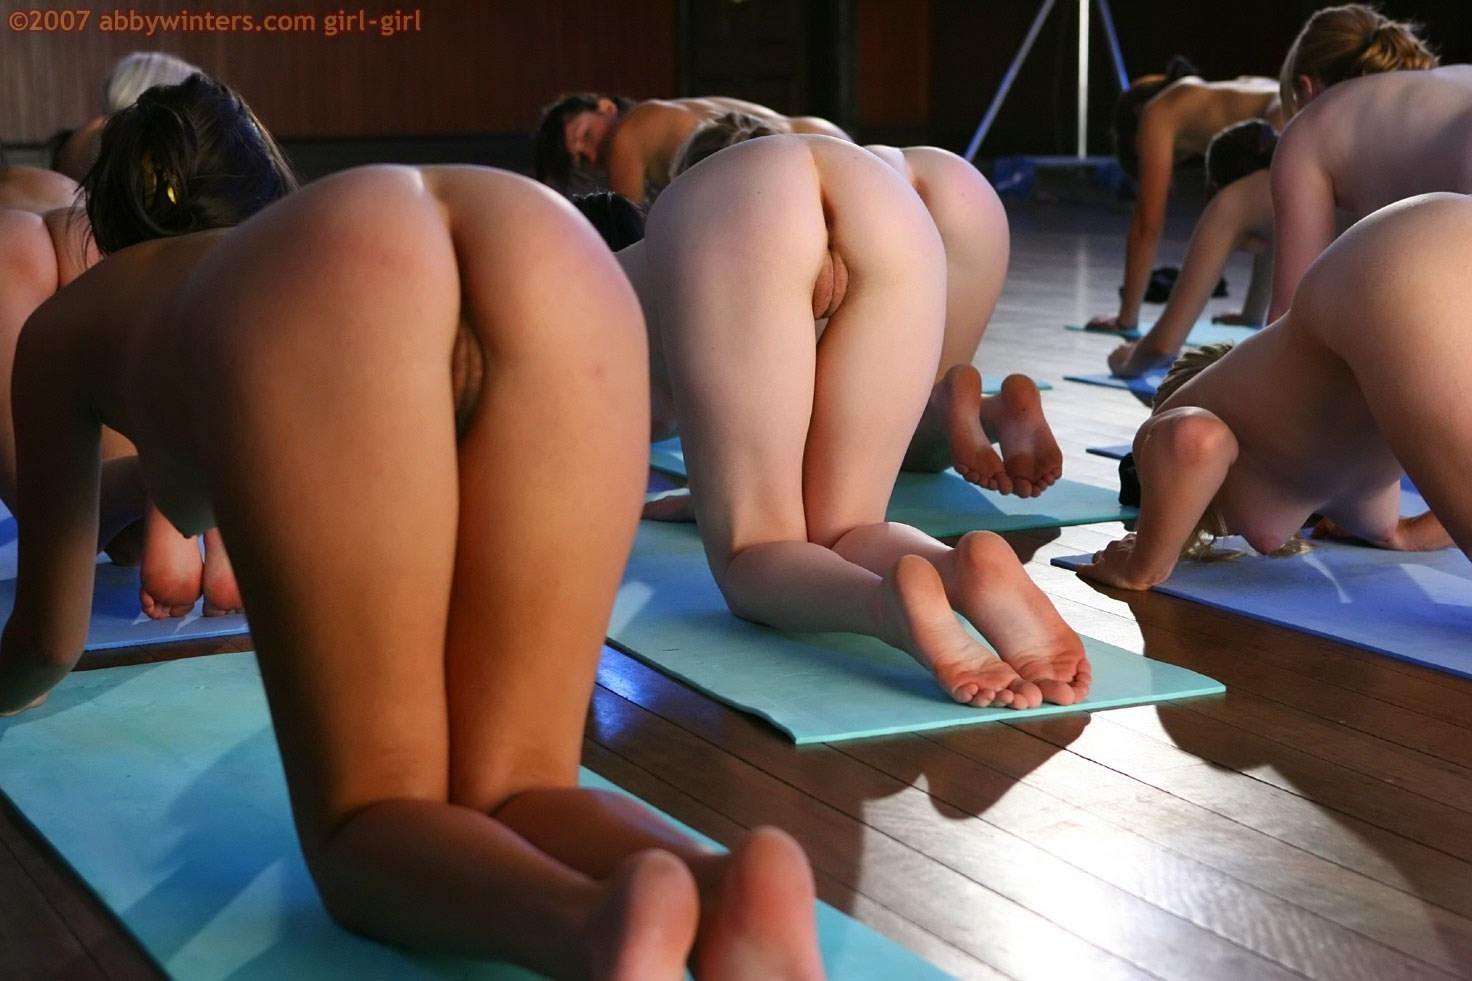 Girls doing yoga porn